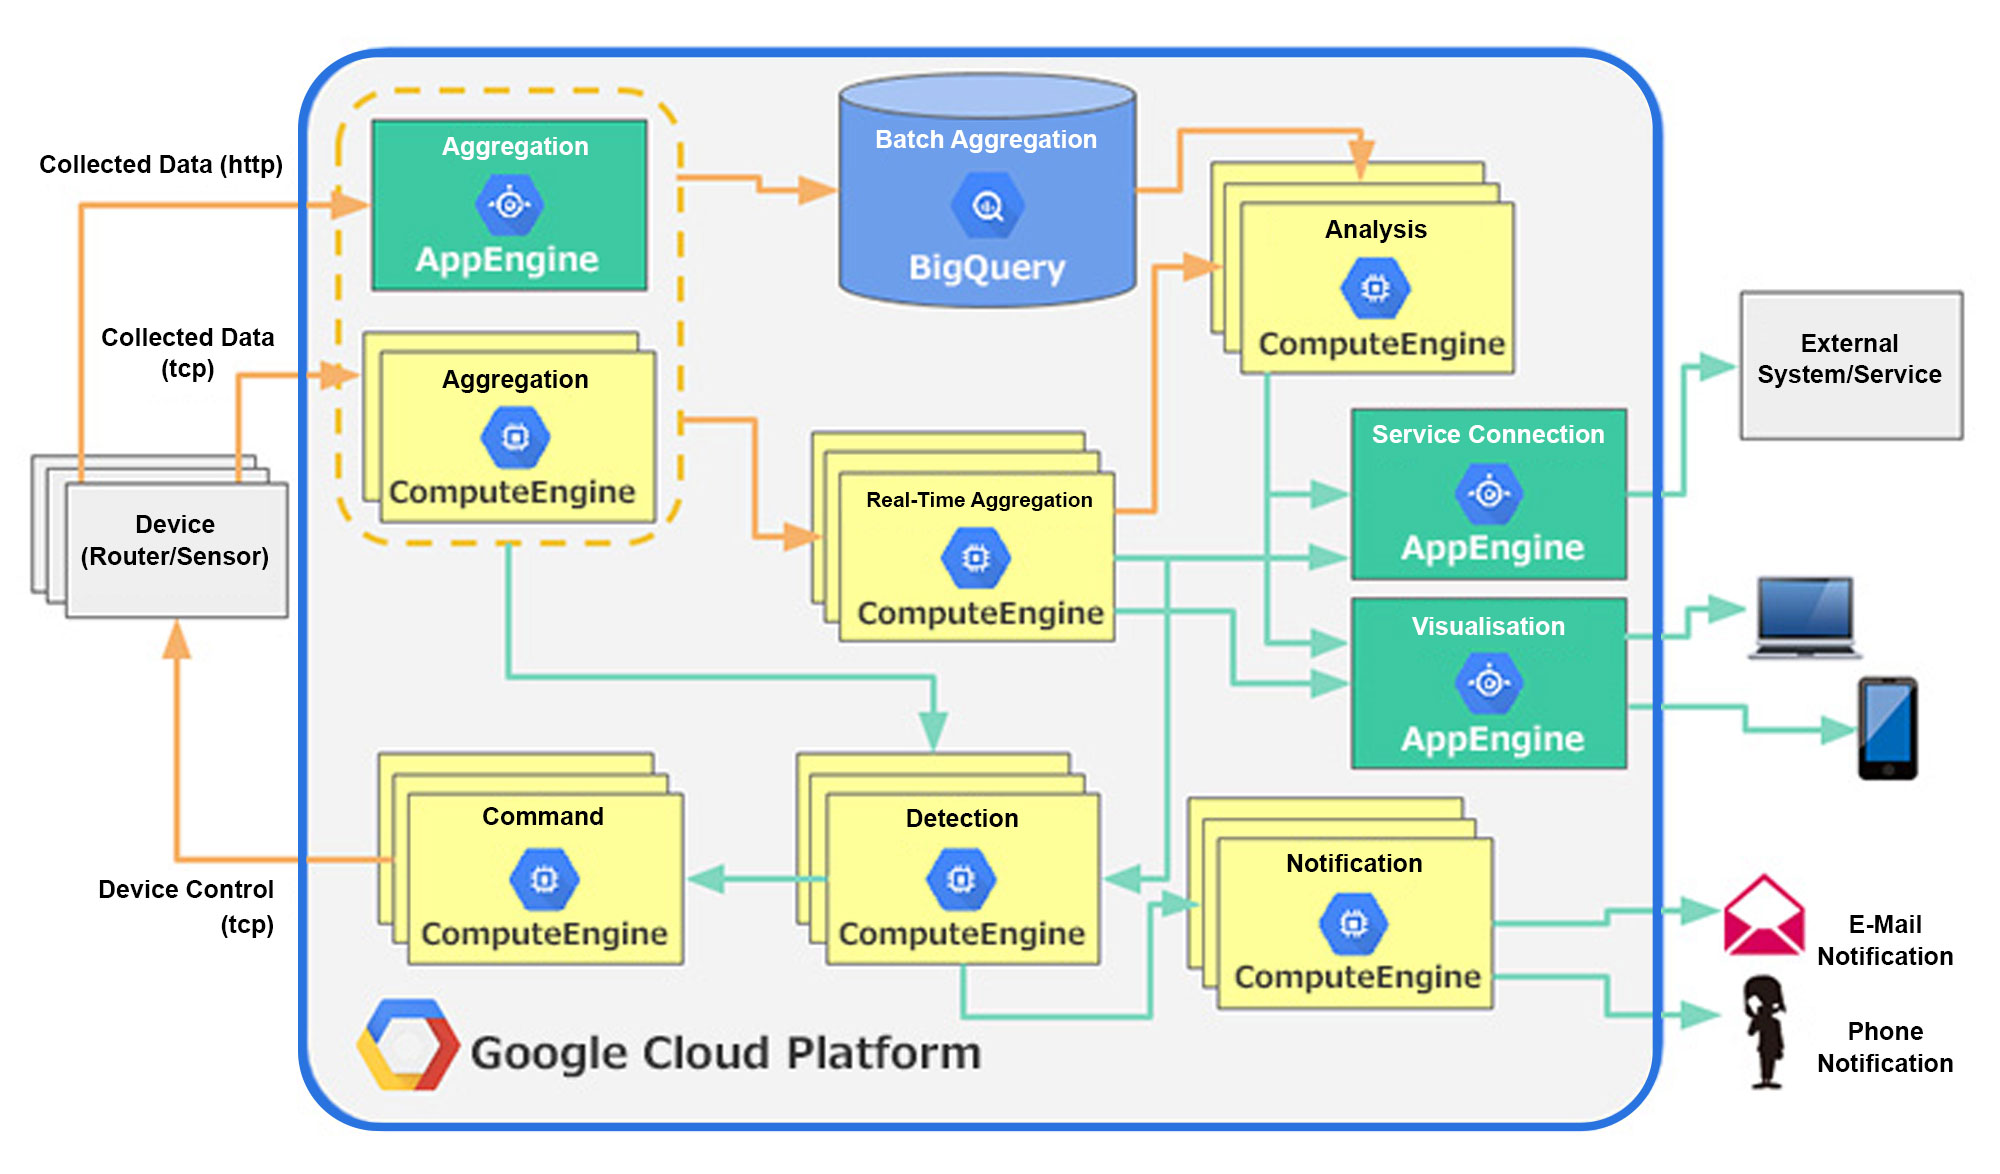 Diagram of architecture on Google Cloud Platform for IoT solution